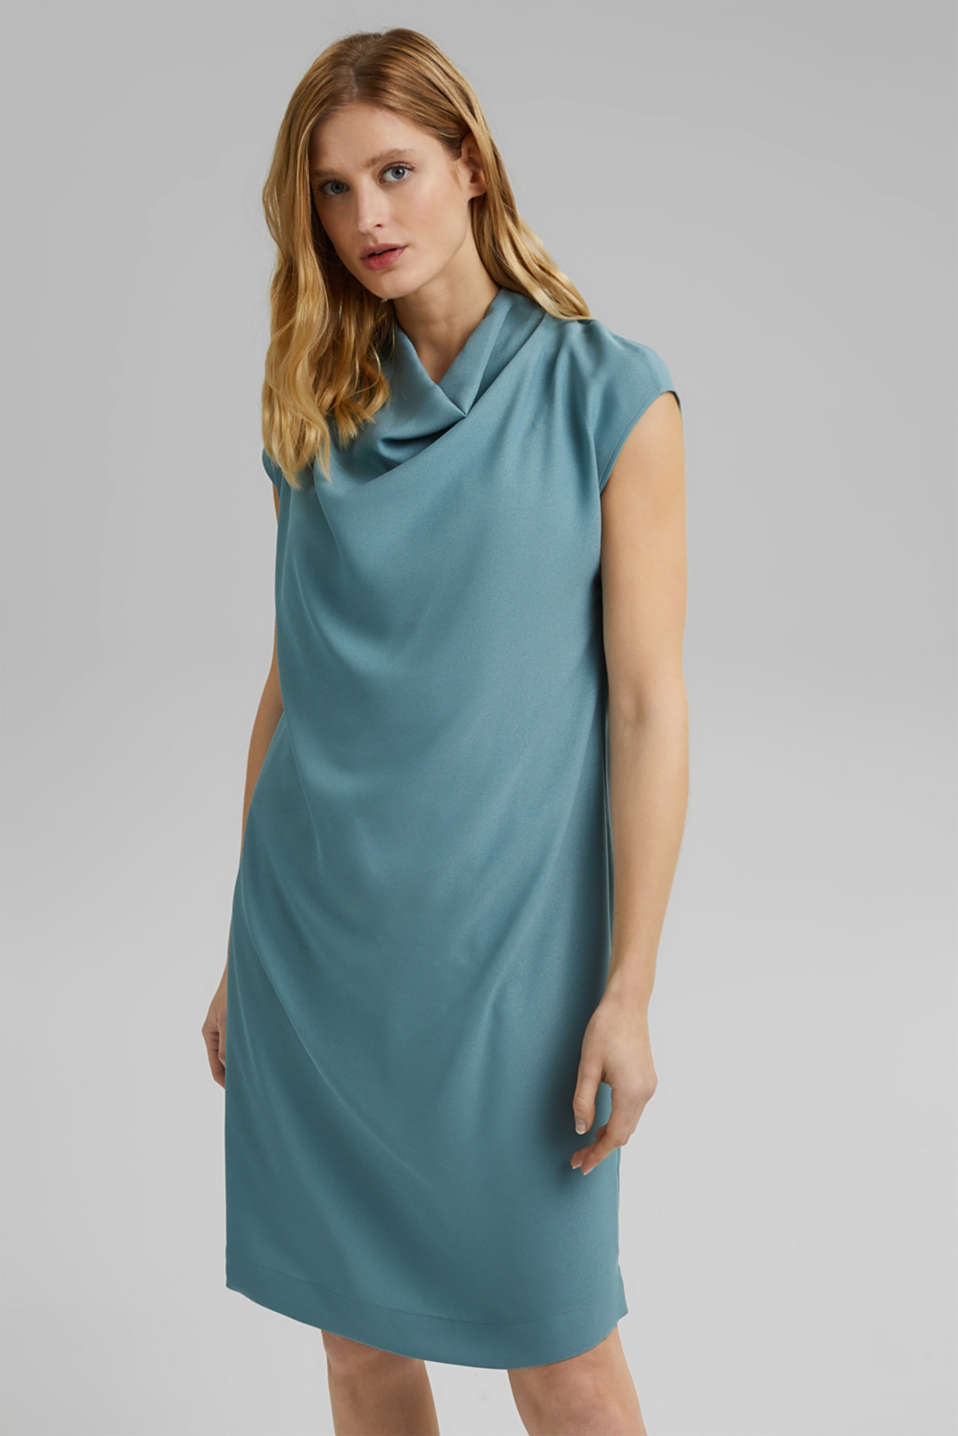 Esprit - Crêpe dress with a waterfall collar